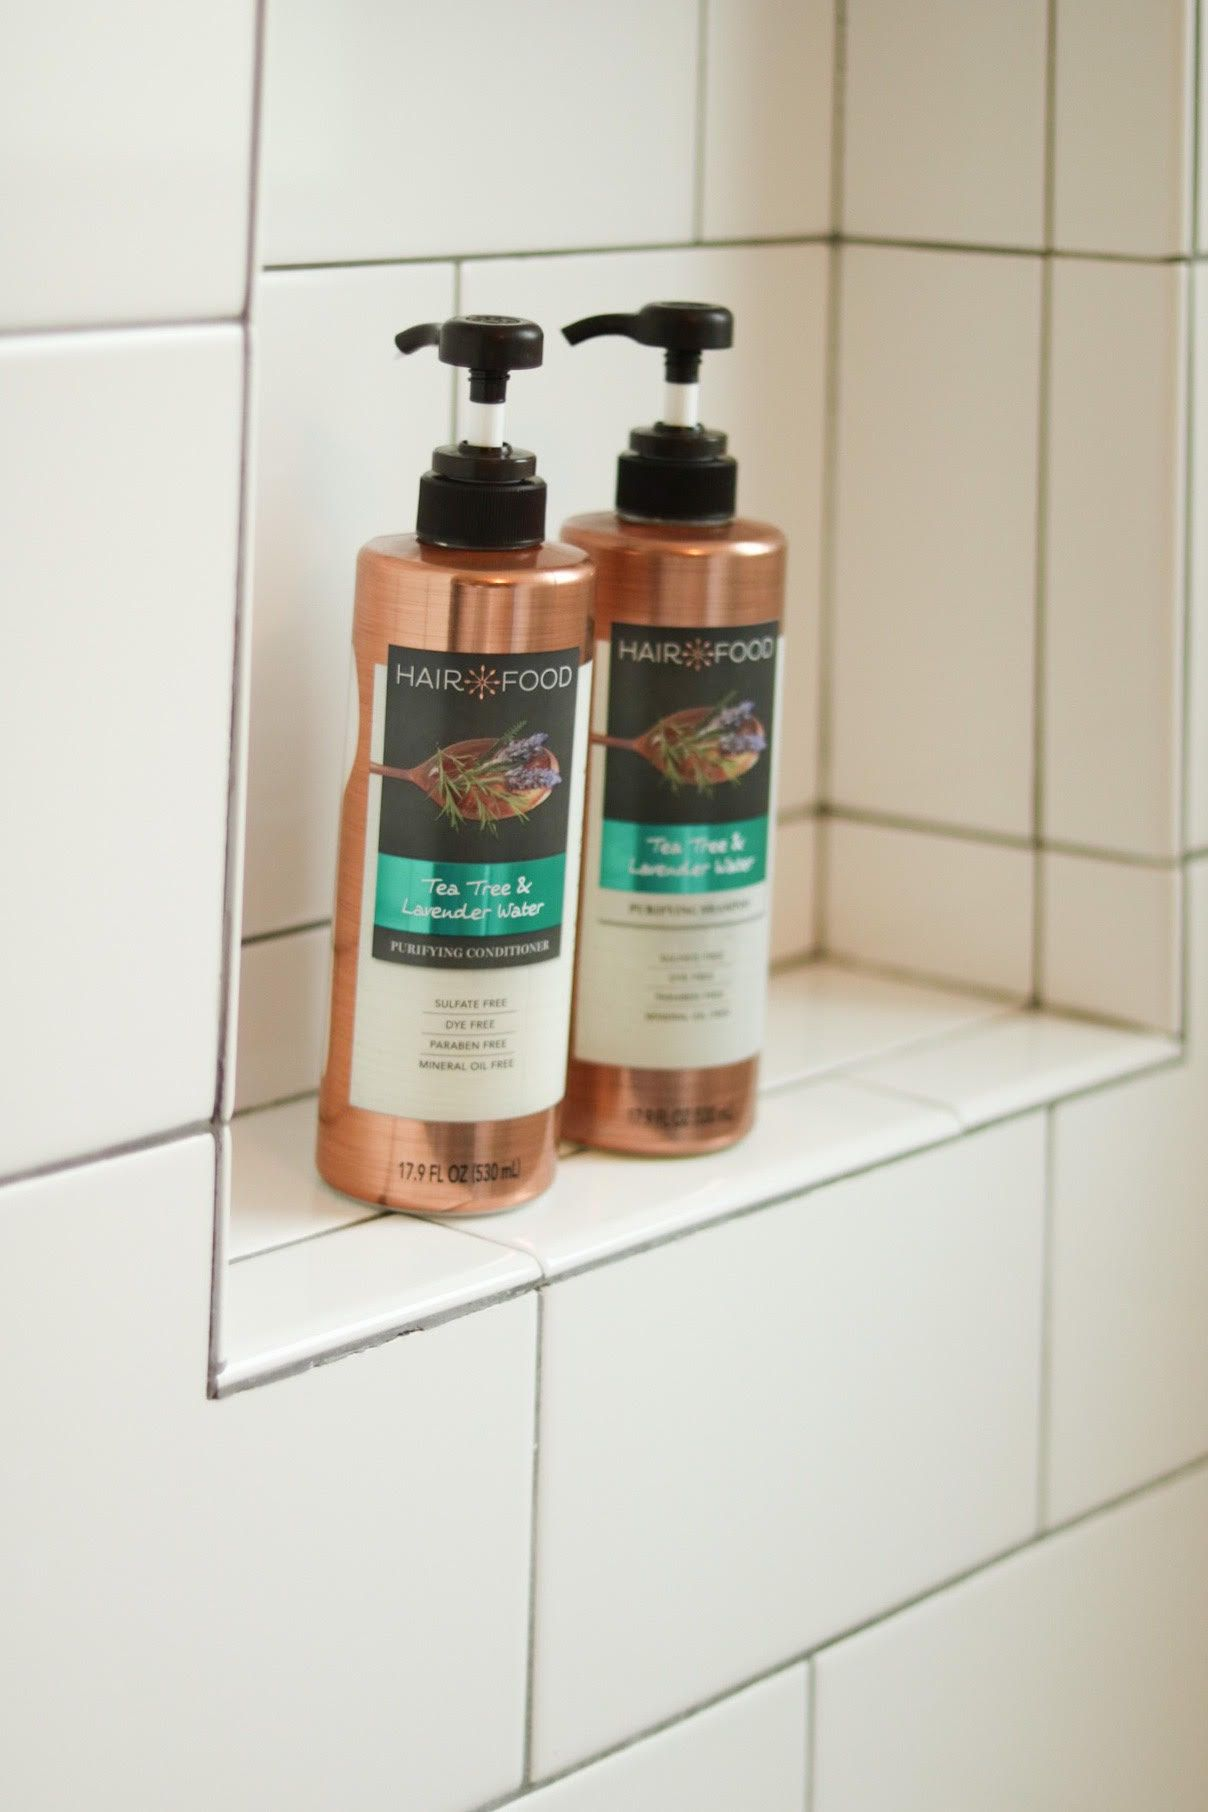 Clean haircare review of Hair Food Dancing Mama Style by